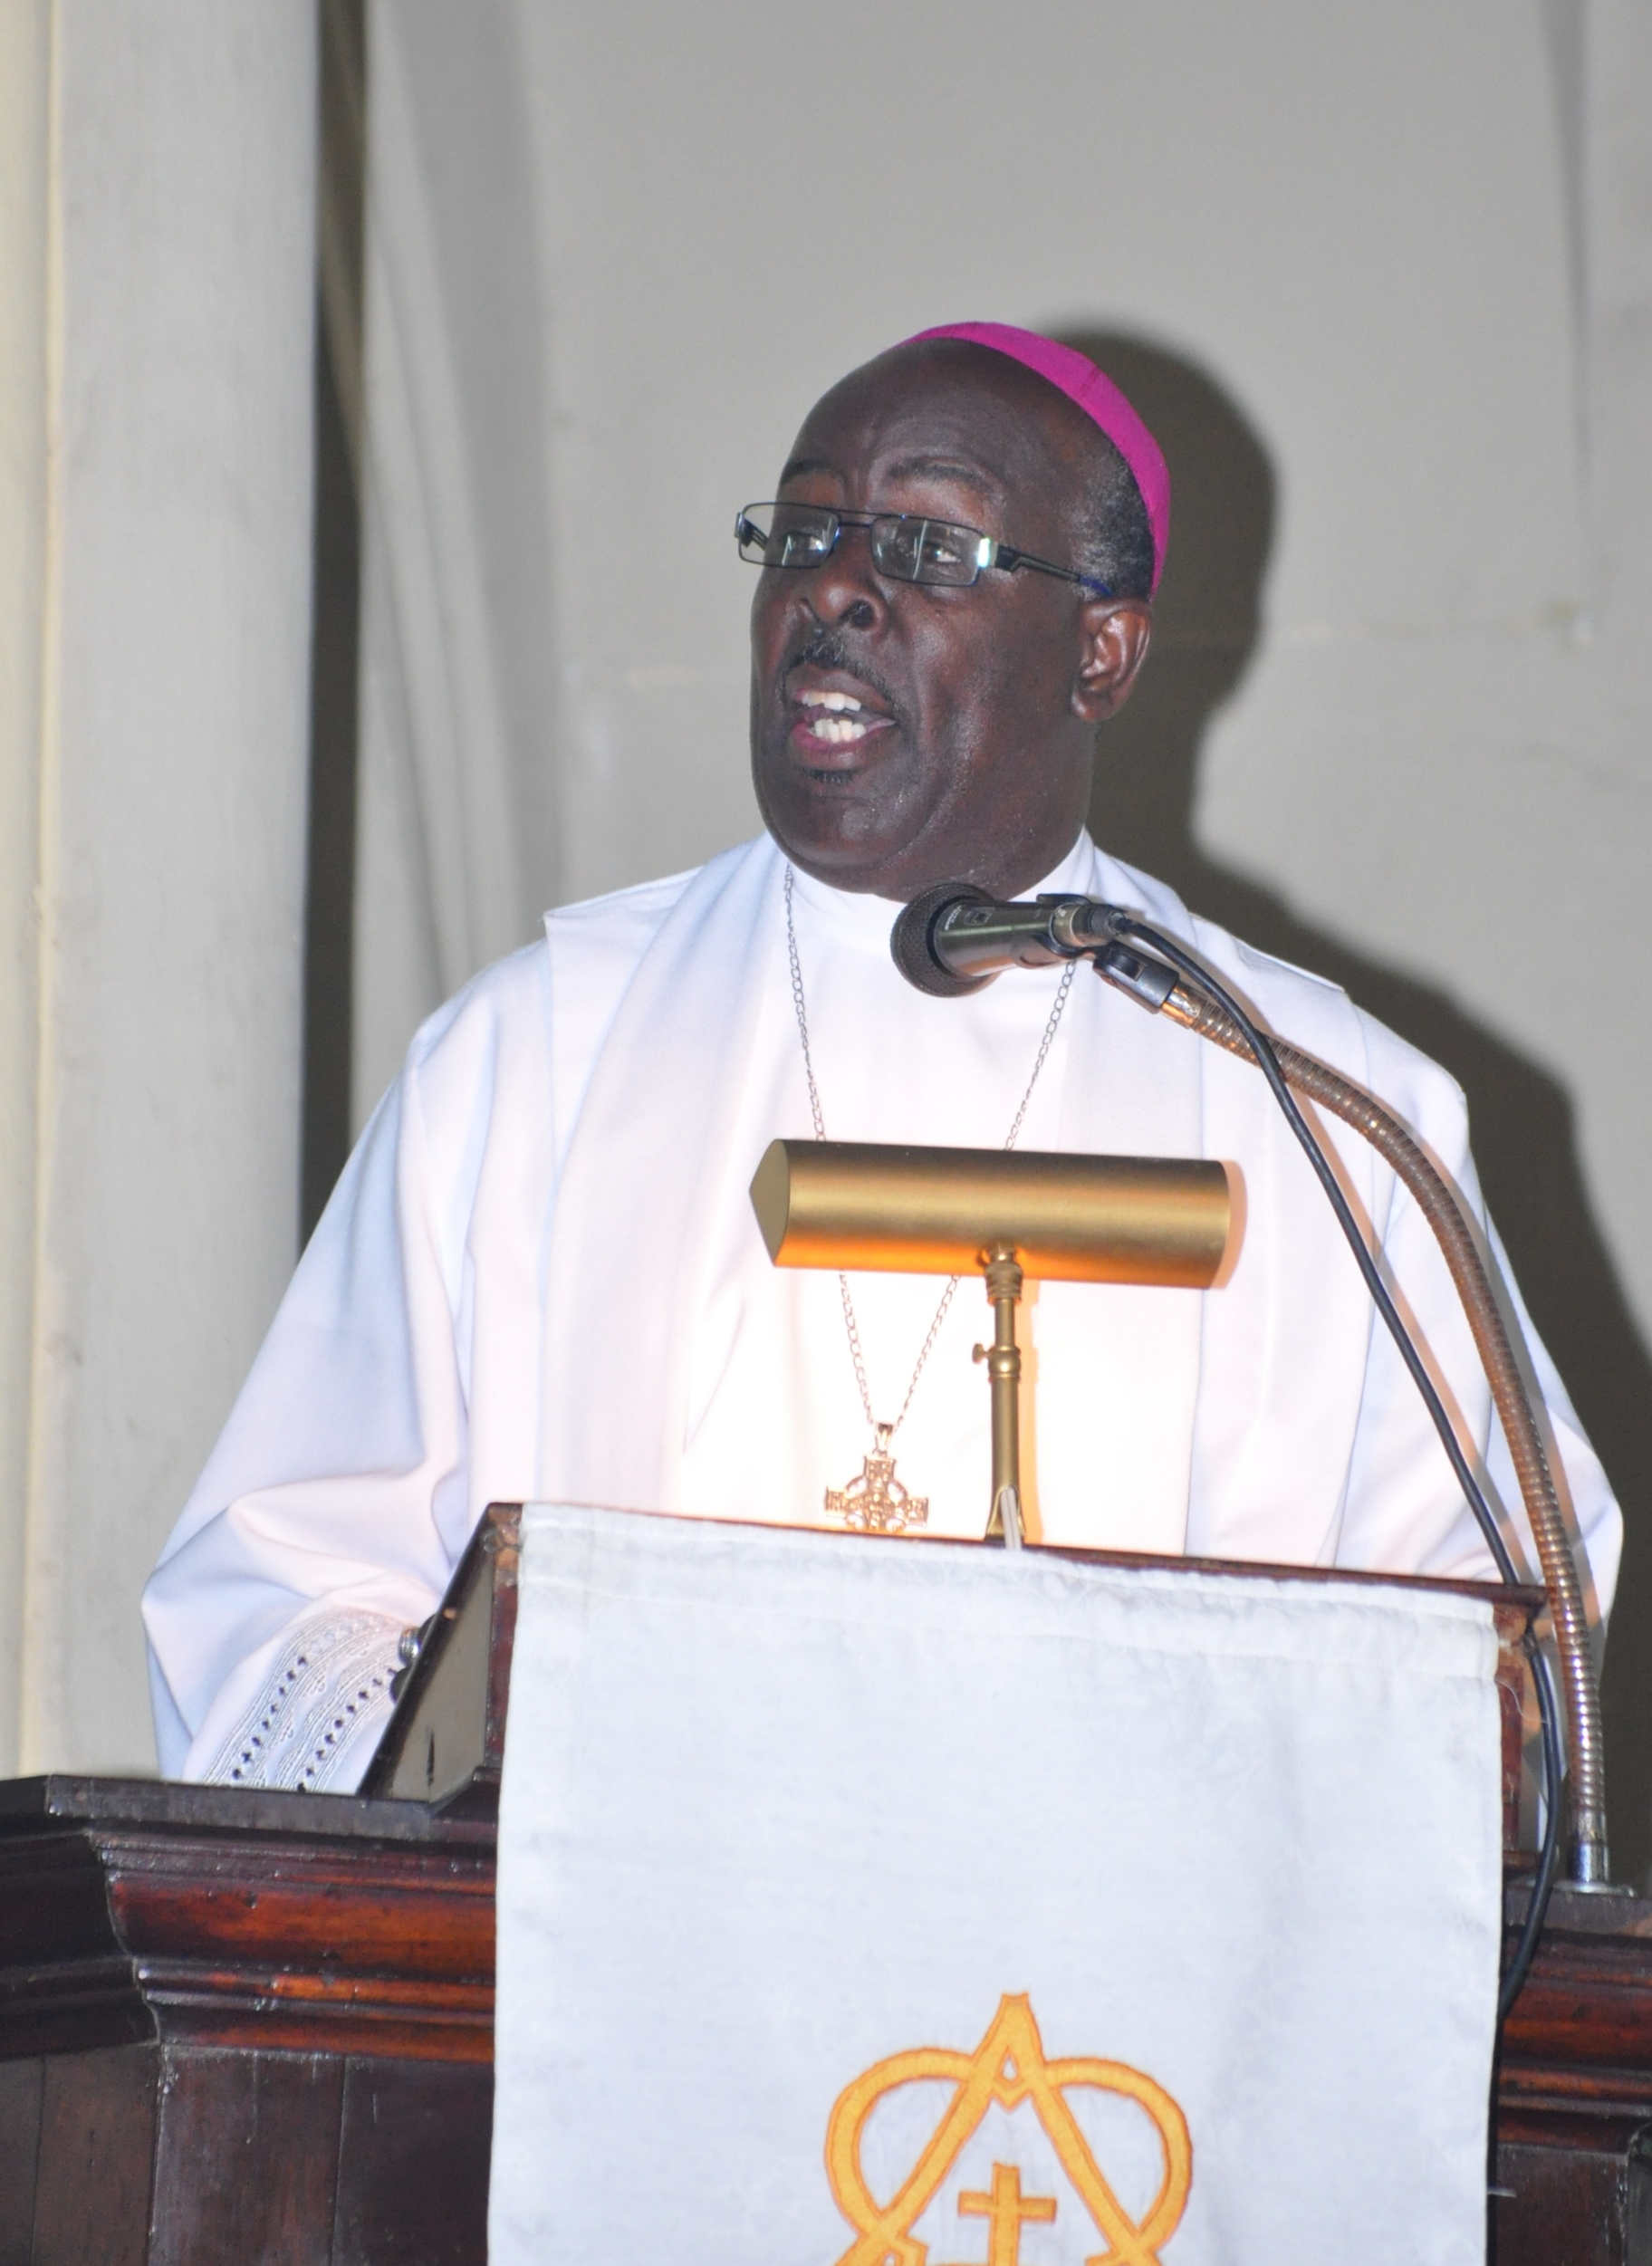 Sermon delivered by The Rt. Rev. Leon Golding ,  Suffragan Bishop of Montego Bay on  Cathedral Sunday – Feast of Christ the King November 23, 2014 at the Cathedral of St. Jago de la Vega, Spanish Town,  celebrating 350 years as an Anglican site of worship and 190th Anniversary of the establishment of the Diocese.